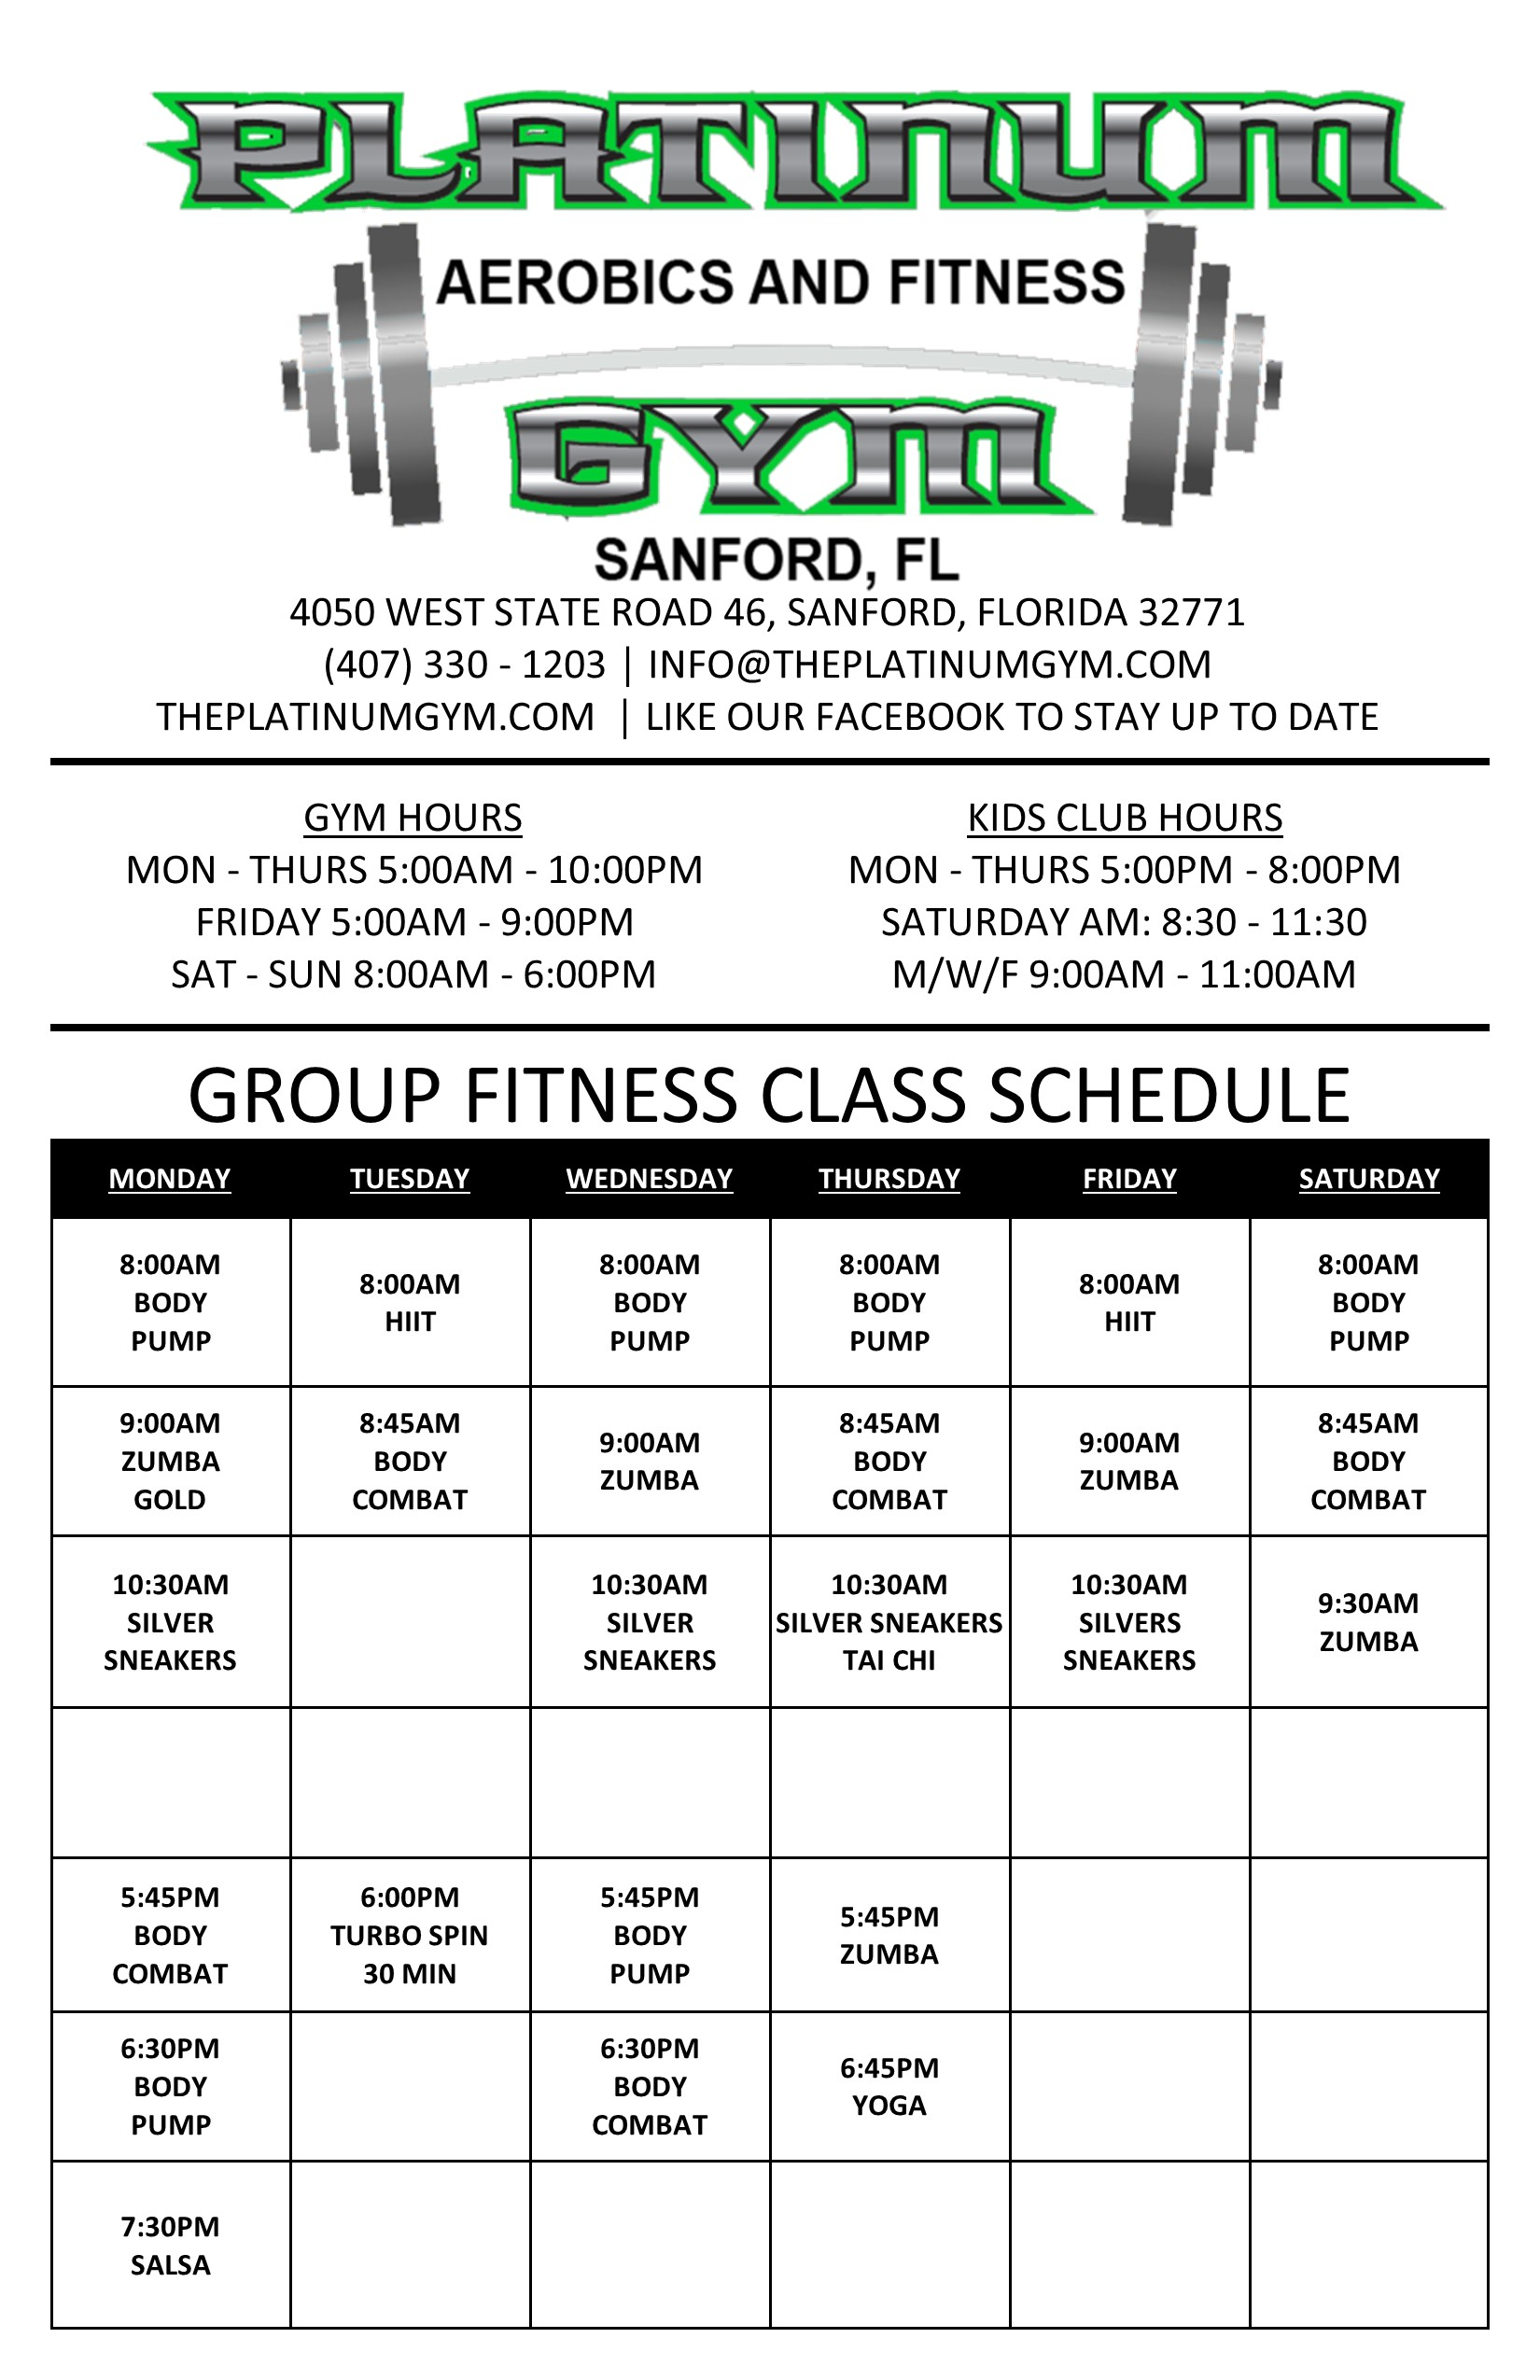 La Fitness Lake Mary Class Schedule : fitness, class, schedule, Class, Schedule, Platinum